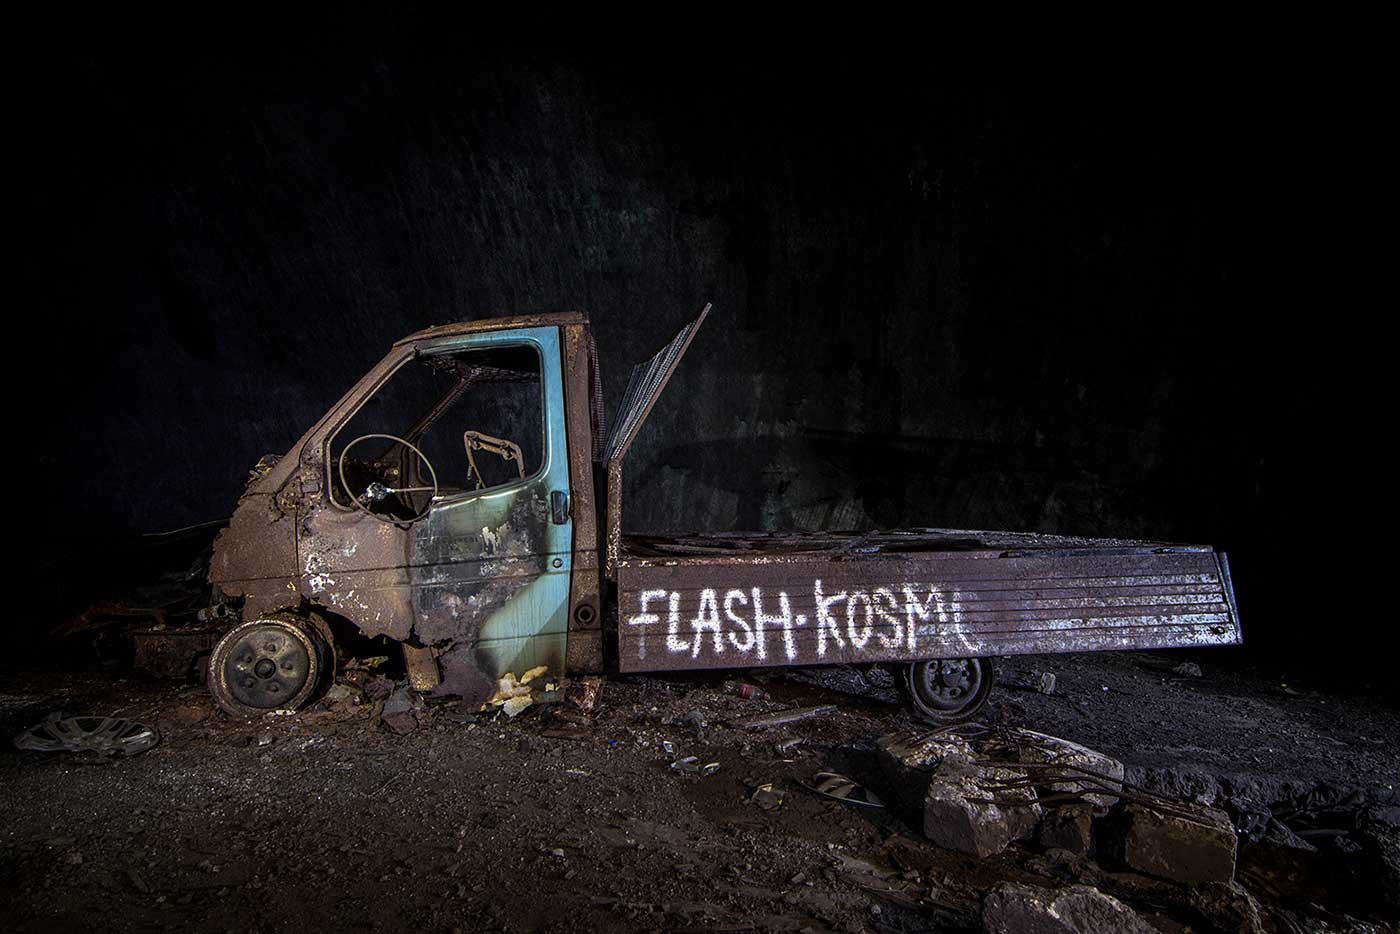 Burnt-out truck inside the former 'KLEK' complex. These 'Flash Kosmo' people seem to have been everywhere. Their tag appears on countless monuments and ruins throughout former Yugoslavia, and even at Buzludzha in Bulgaria.